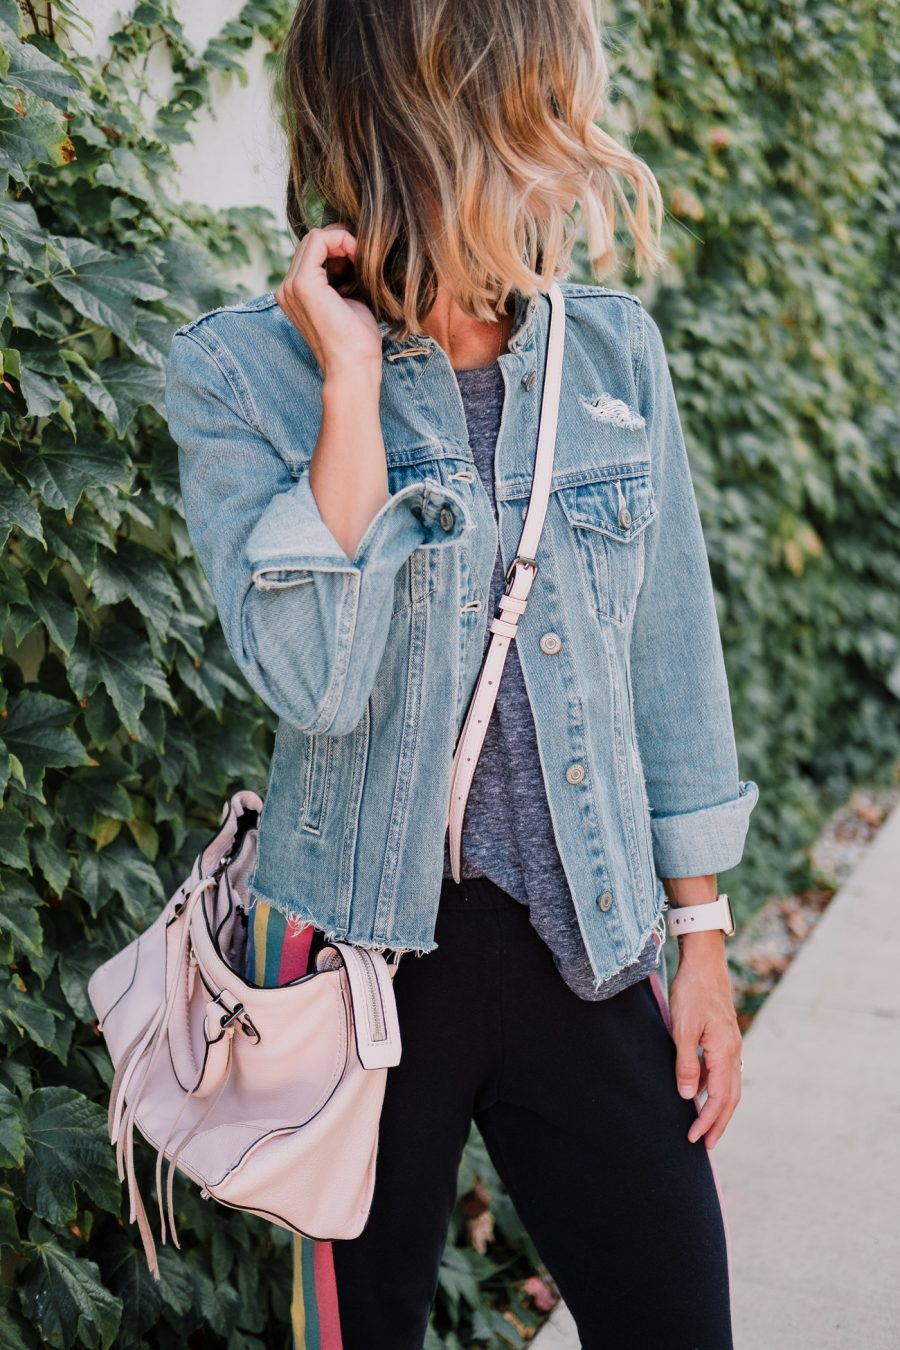 Wildfox sweatpants, tee, denim jacket, New Balance sneakers, cross body bag